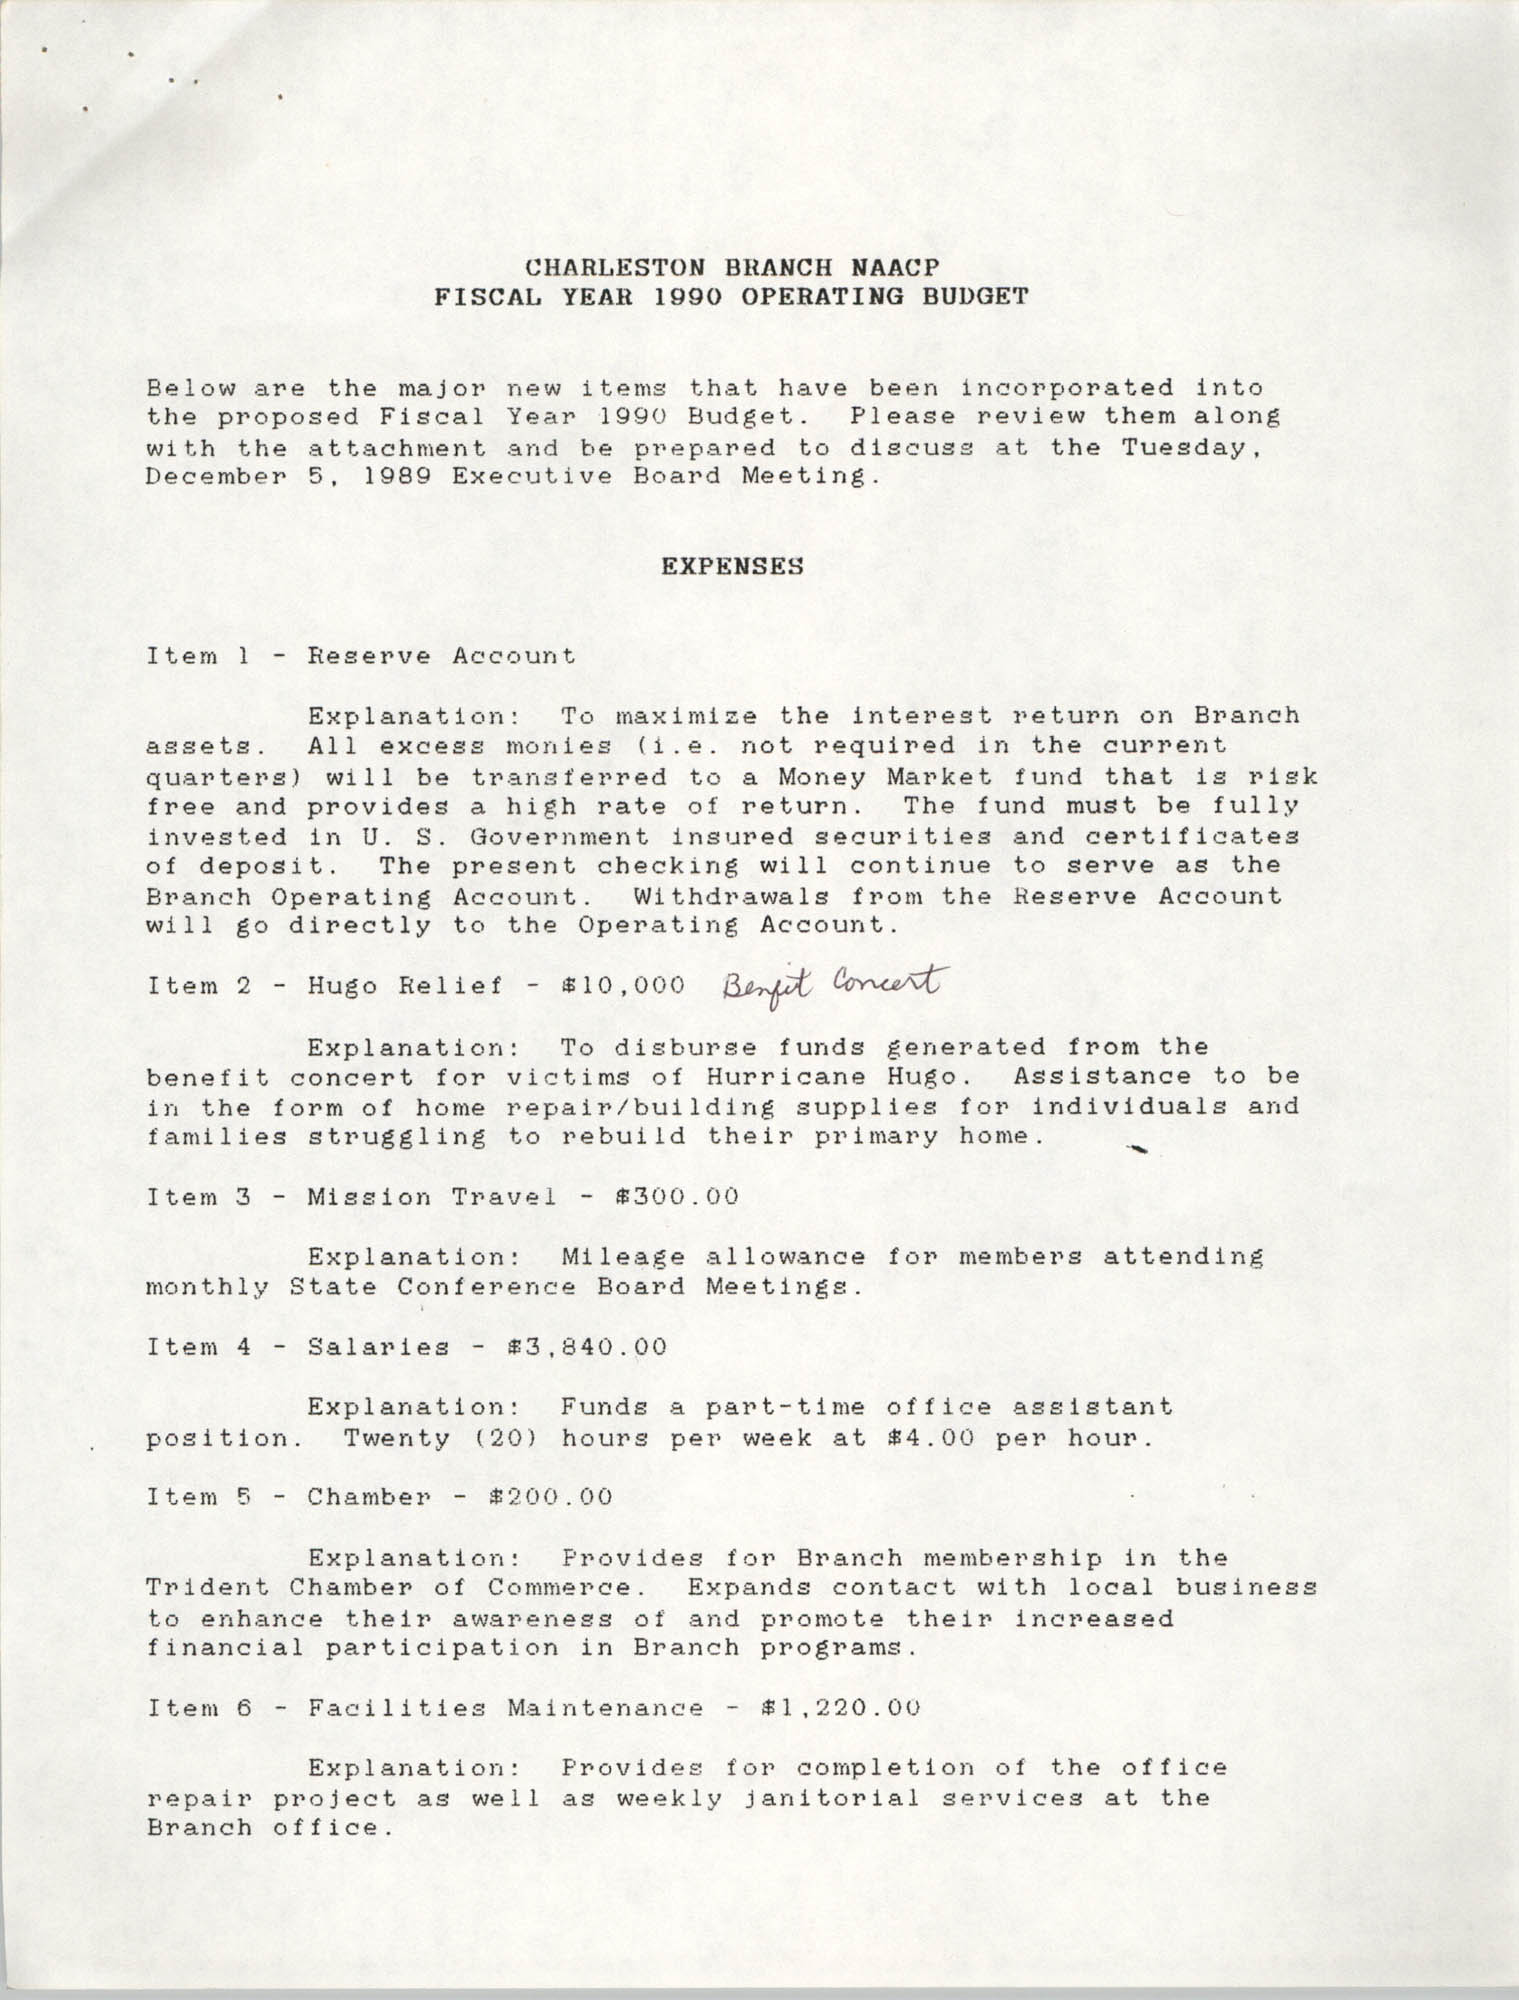 Charleston Branch of the NAACP, Fiscal Year 1990 Operating Budget